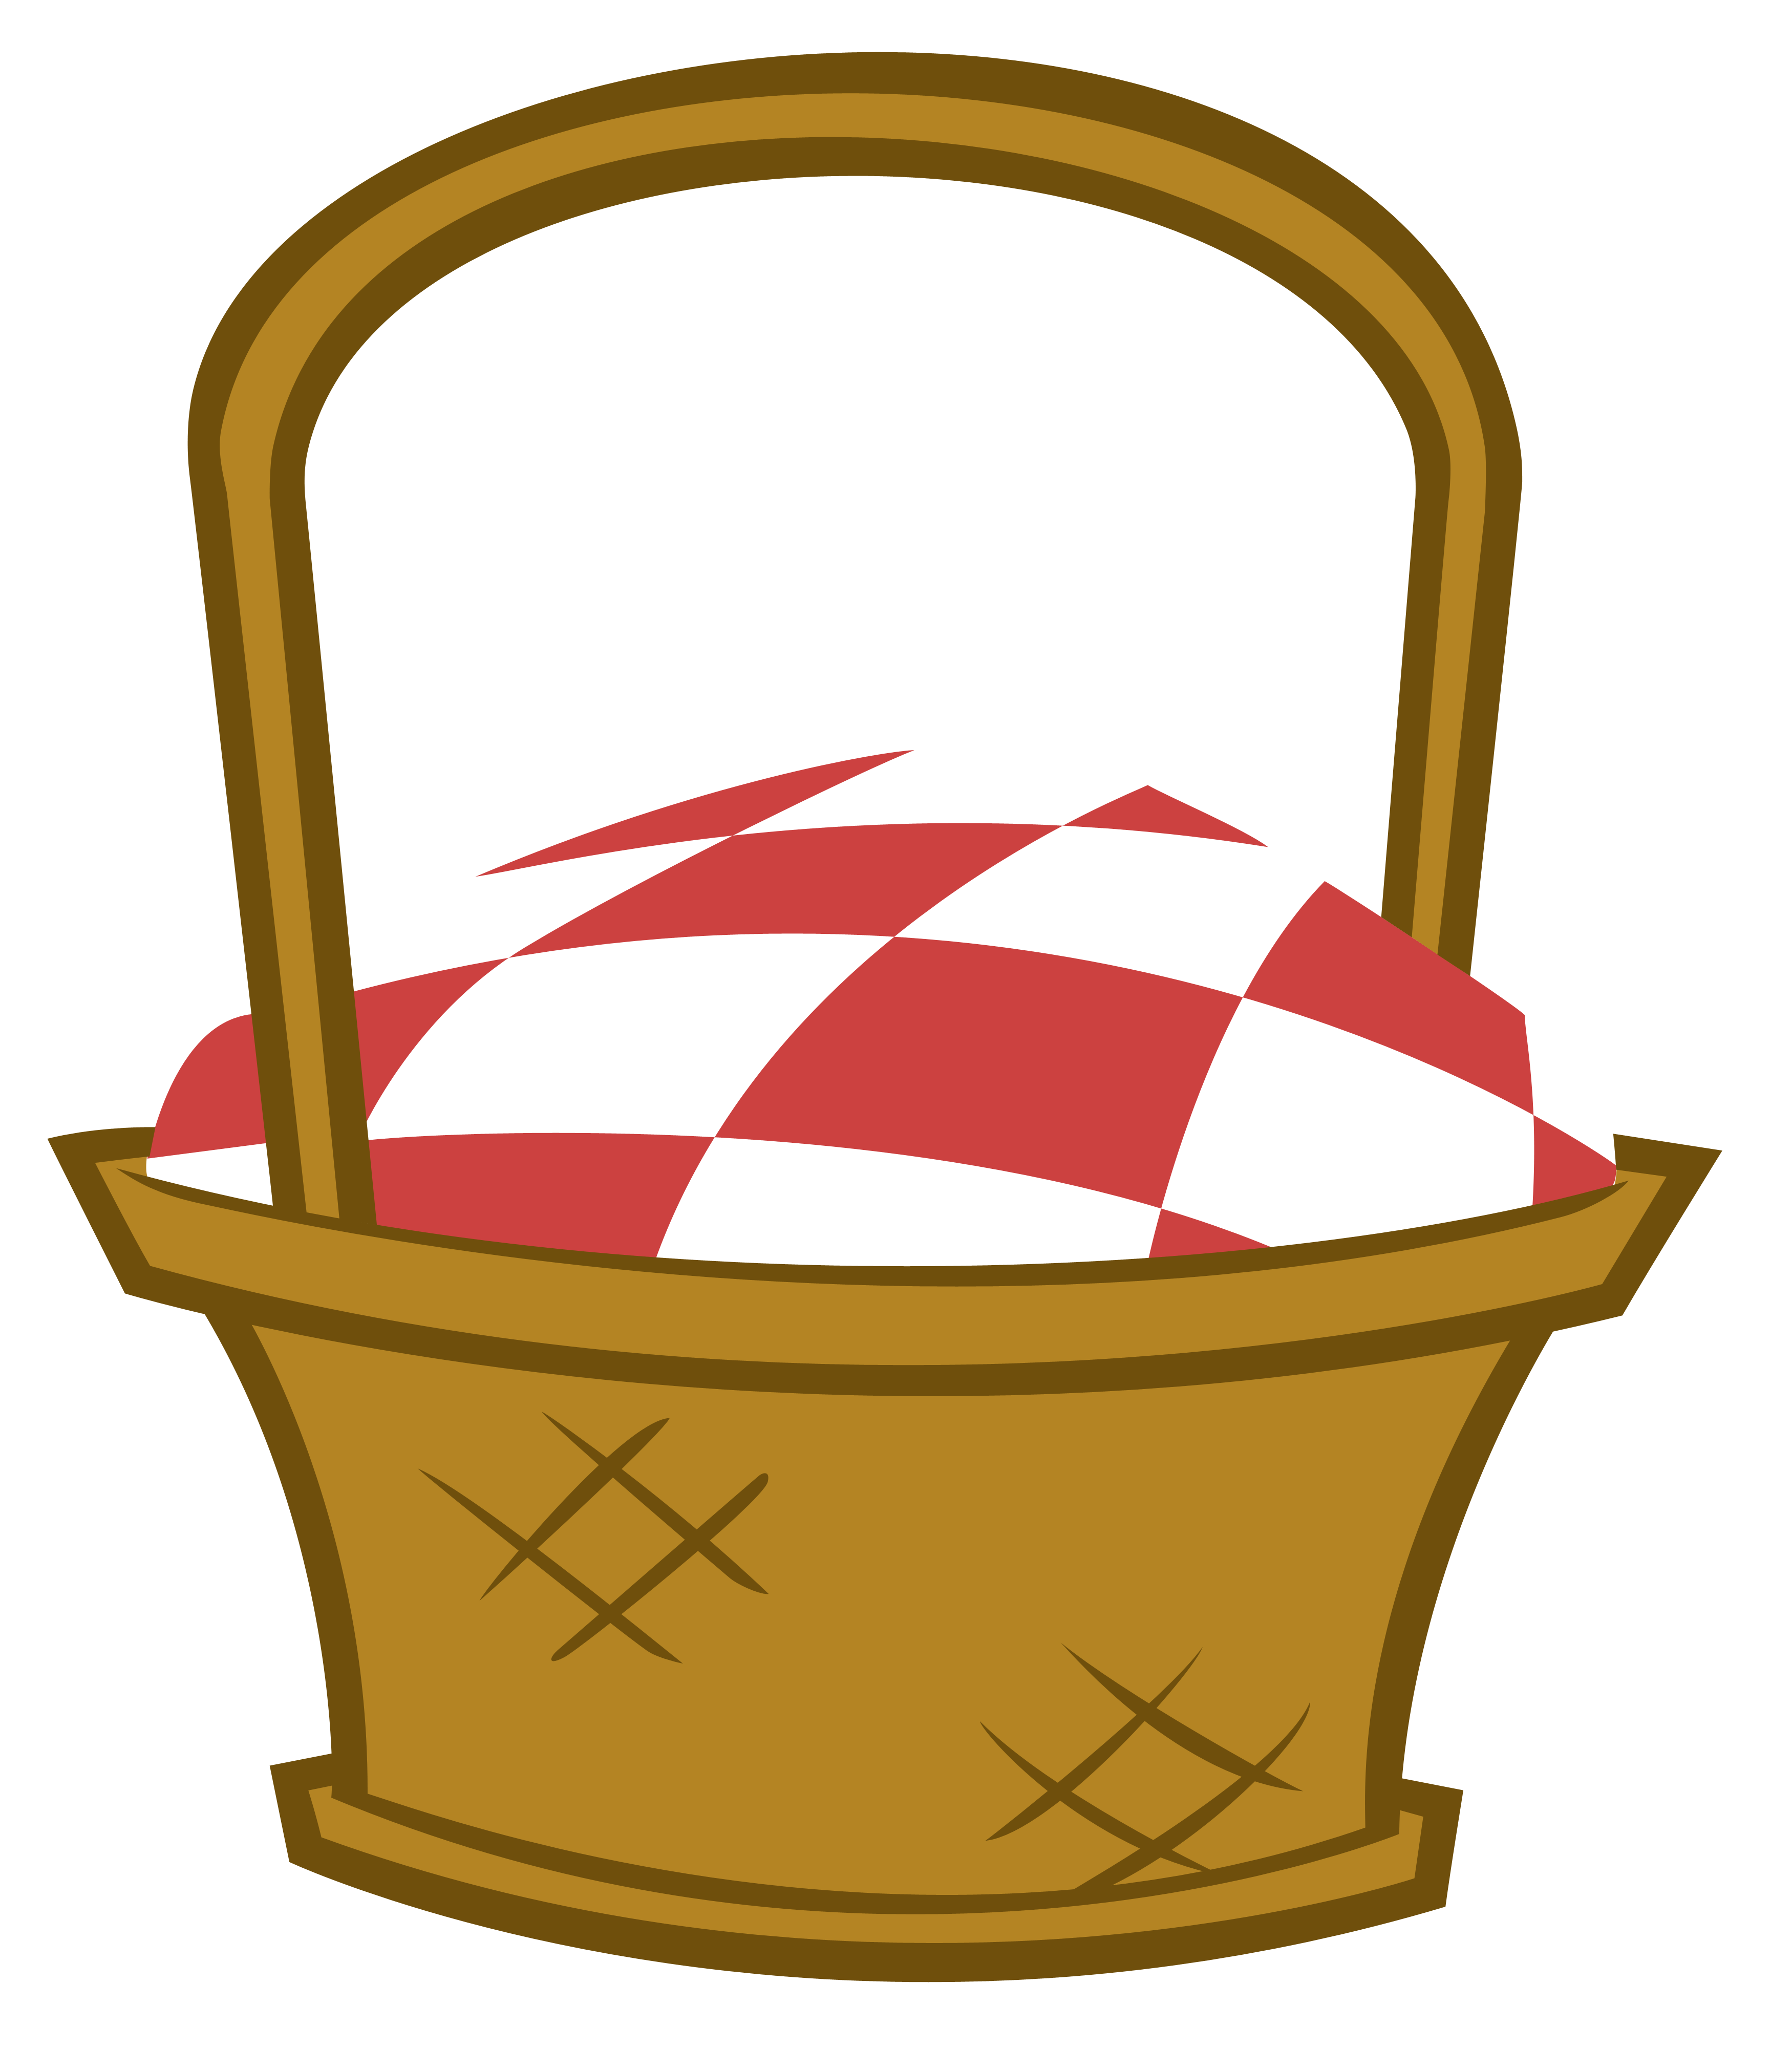 Picnic Basket Clipart Black And White | Clipart Panda - Free ...